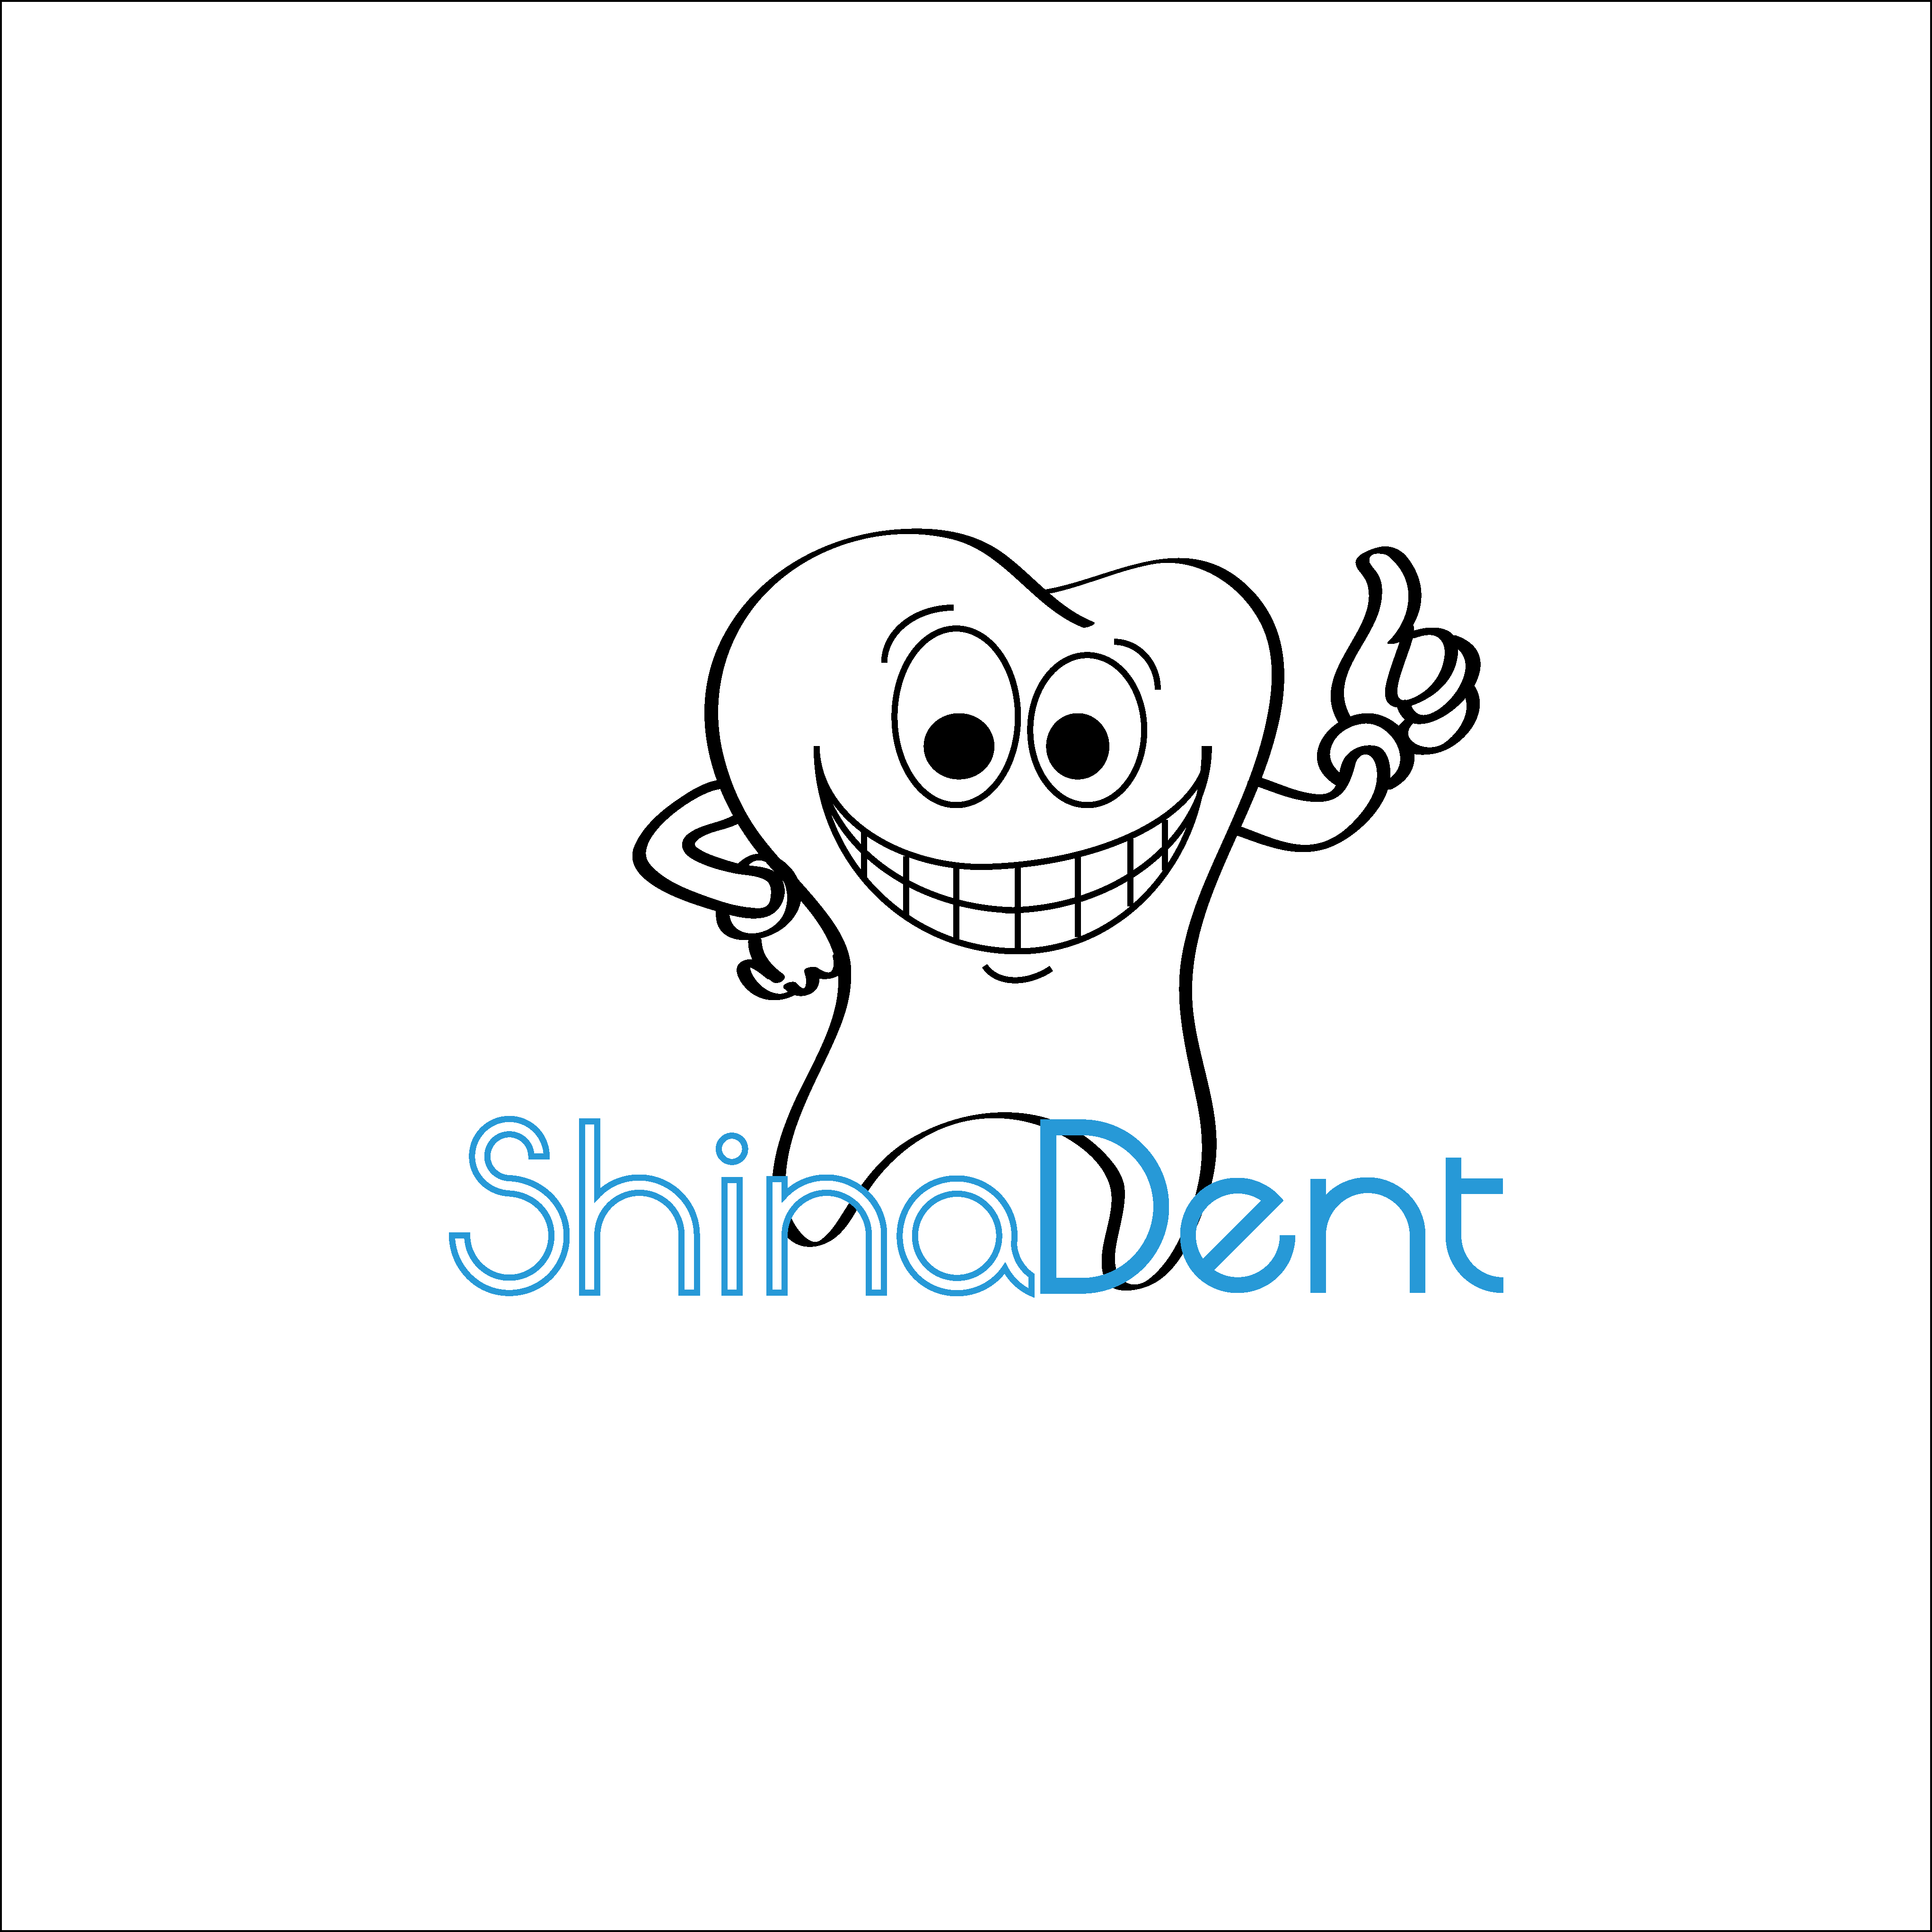 ShinaDent Tooth